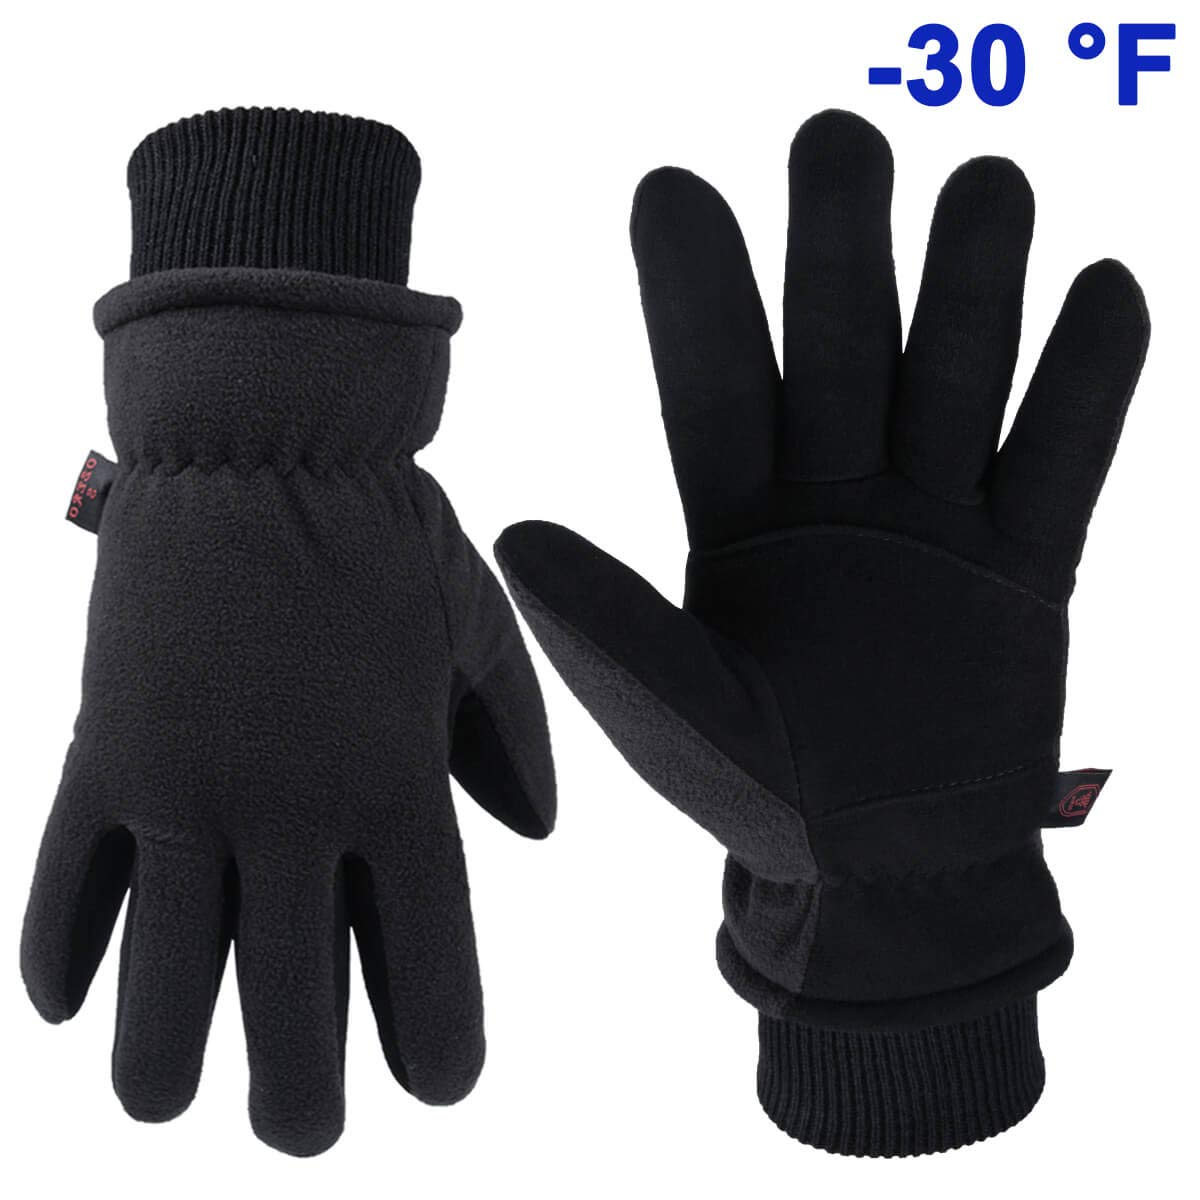 OZERO Insulated Work Gloves Deerskin Leather Winter Glove Thermal for Driving Cycling Skiing Hands Warm in Cold Weather for Men and Women Extra Large Black by OZERO